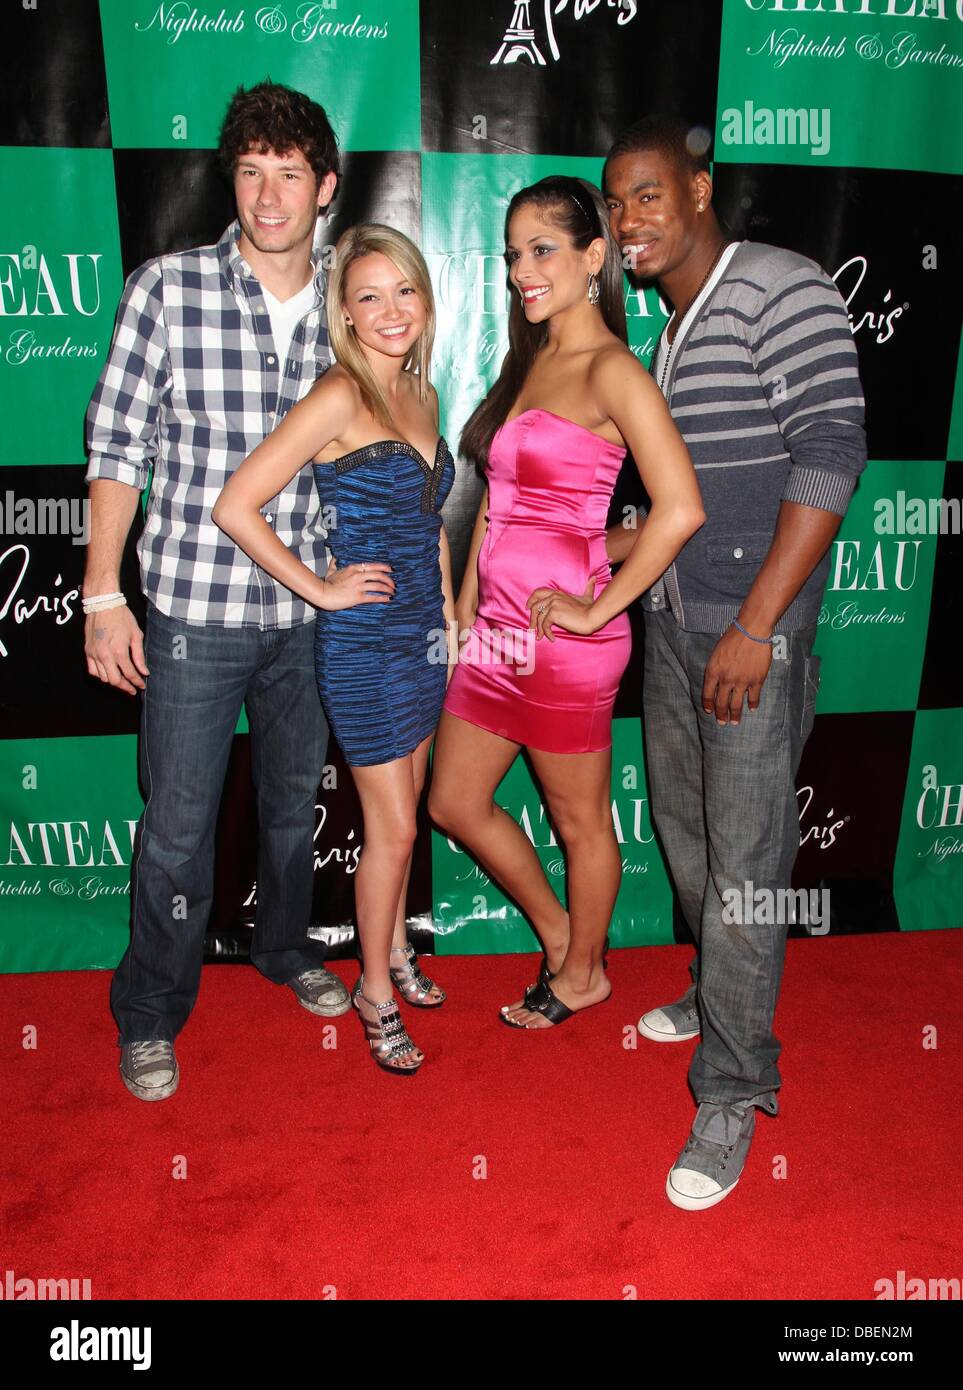 """heather marter nany hook up The wild and crazy cast of mtv's """"the real world: las vegas"""" hit up sugar factory american brasserie for dinner and some sweet treats last night dustin zito, heather marter, leroy garrett and nany gonzalez stopped in around 10 pm and immediately headed into the retail store to look around ."""